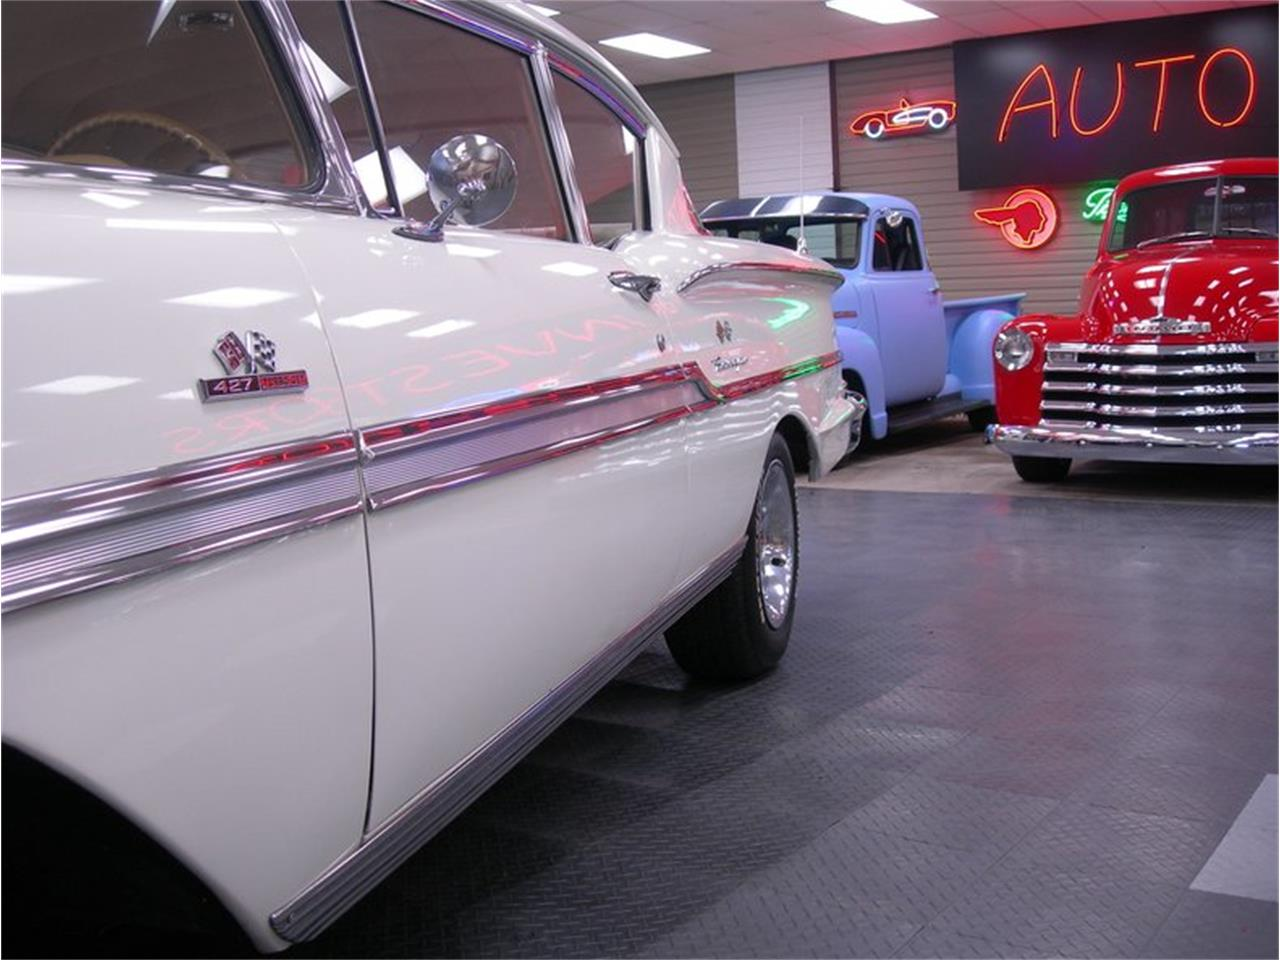 1958 Chevrolet Biscayne for sale in Dothan, AL – photo 22